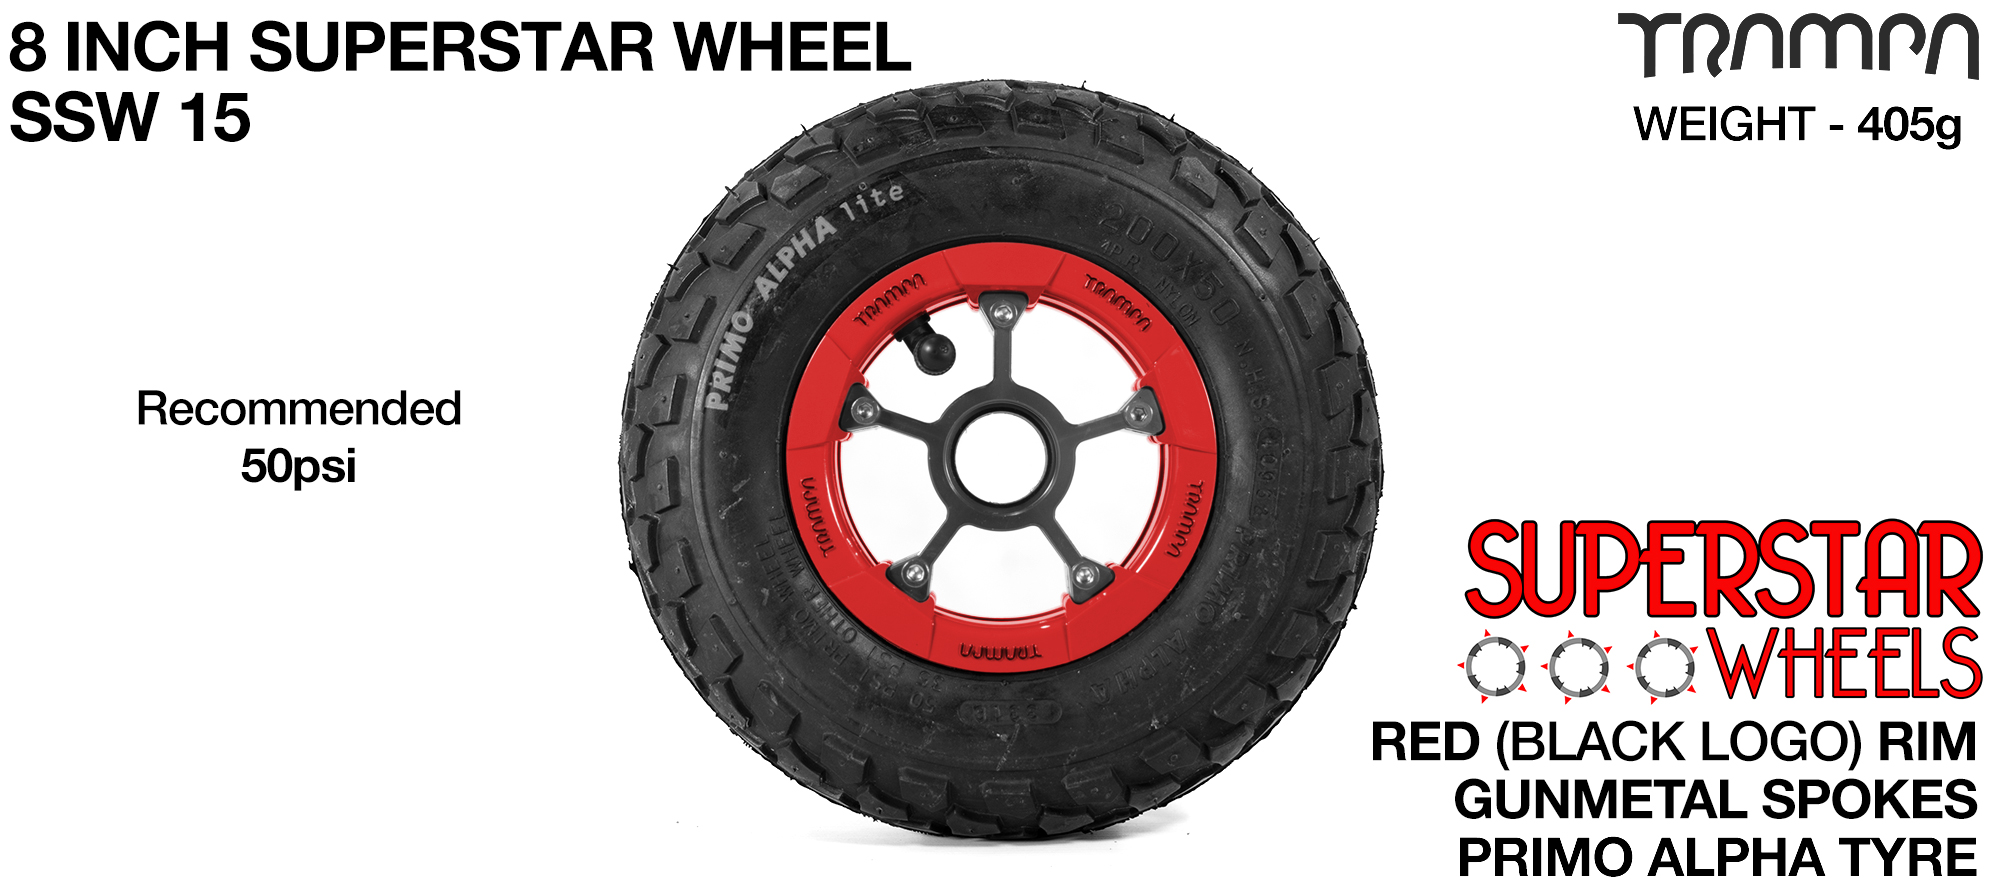 Superstar 8 inch wheel - Red Gloss Rim Gunmetal Anodised spokes & Black Alpha 8 Inch Tyres